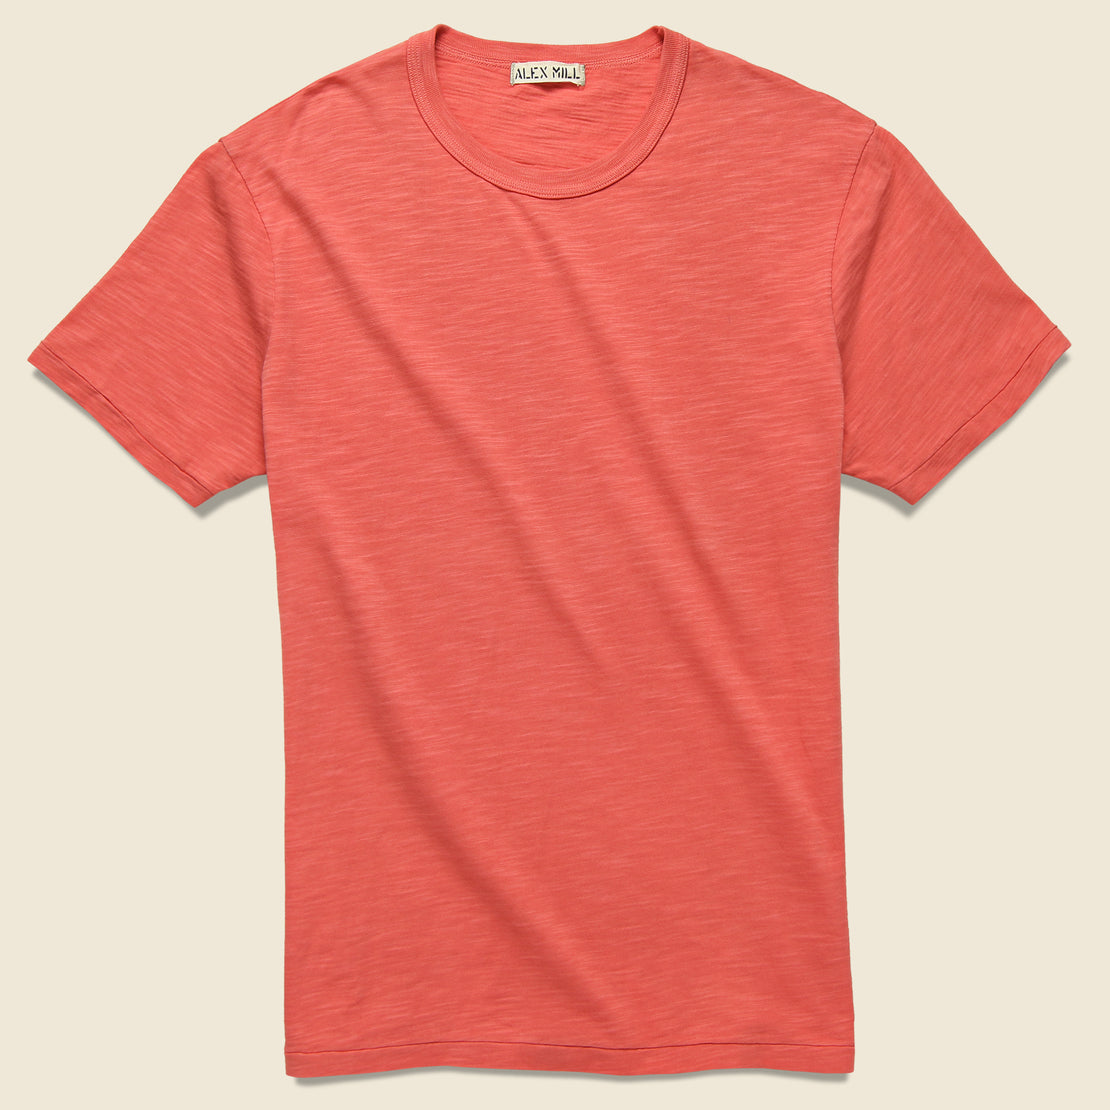 Alex Mill New Standard Crew Tee - Washed Red